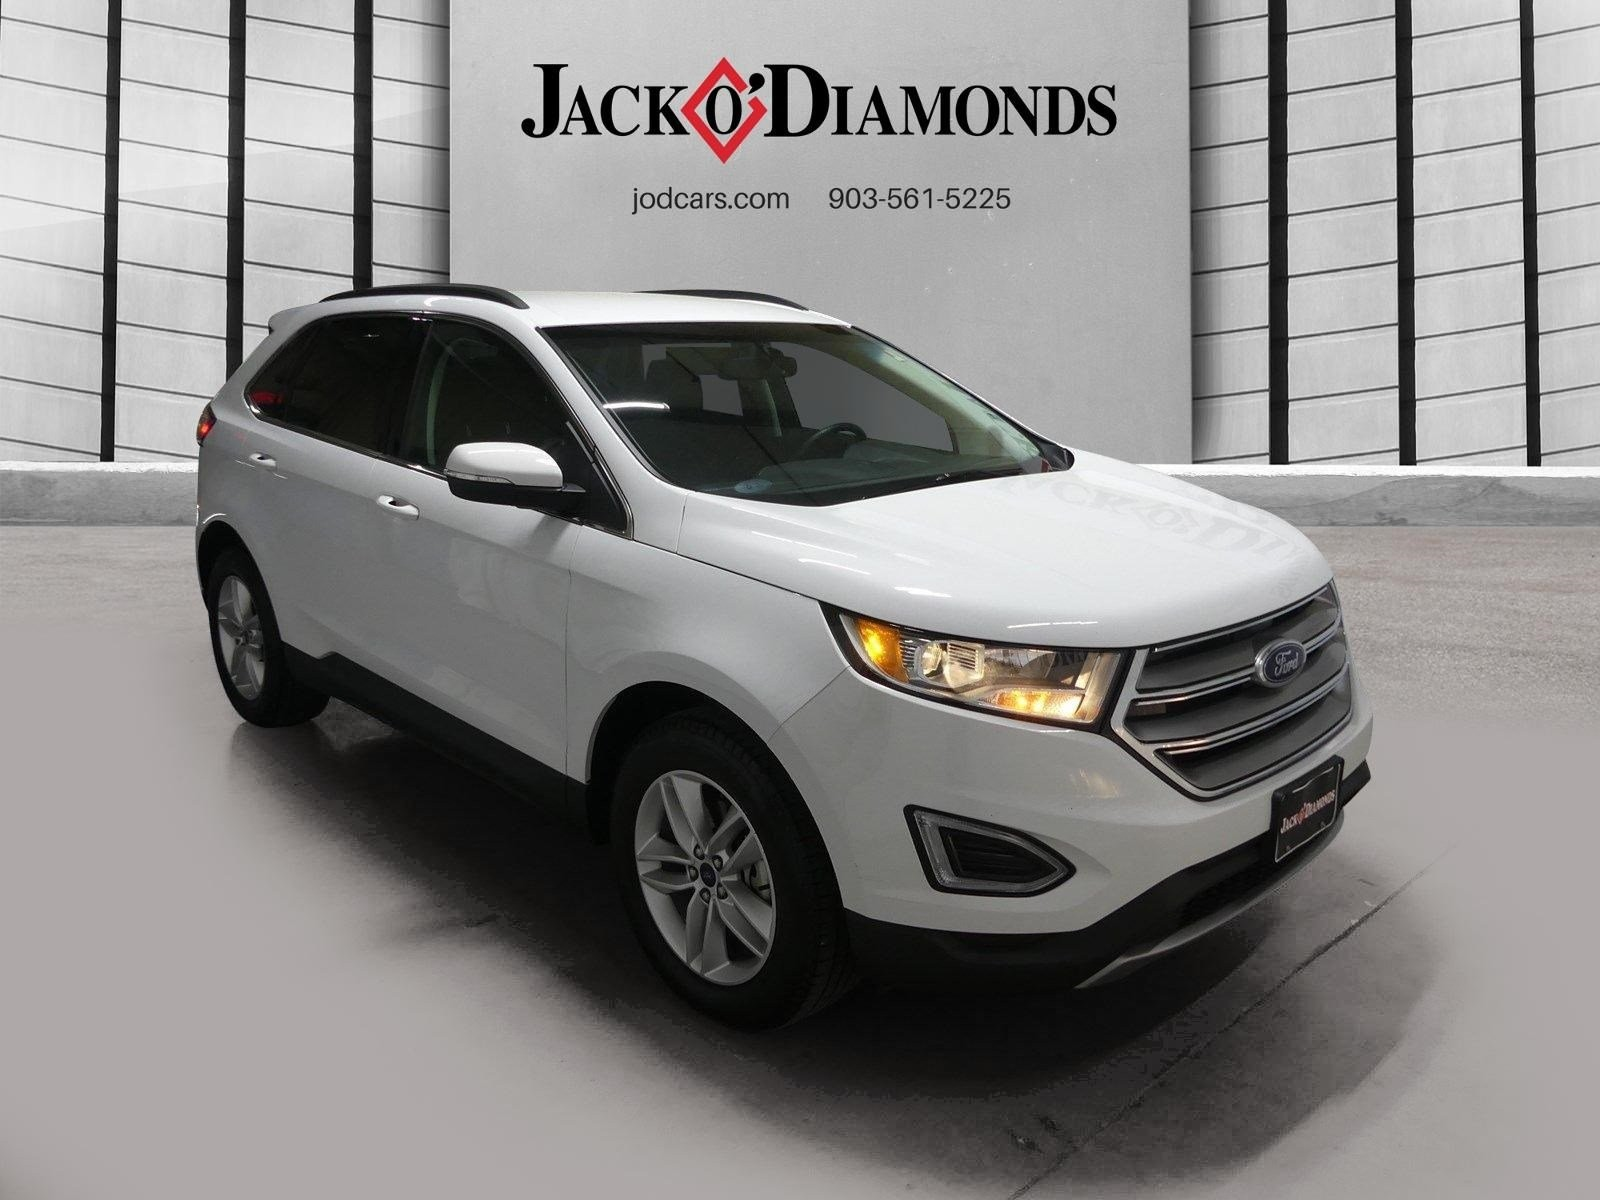 2007 ford Edge Engine Diagram Pre Owned 2015 ford Edge Sel Sport Utility Near Tyler 18hpi42a Of 2007 ford Edge Engine Diagram